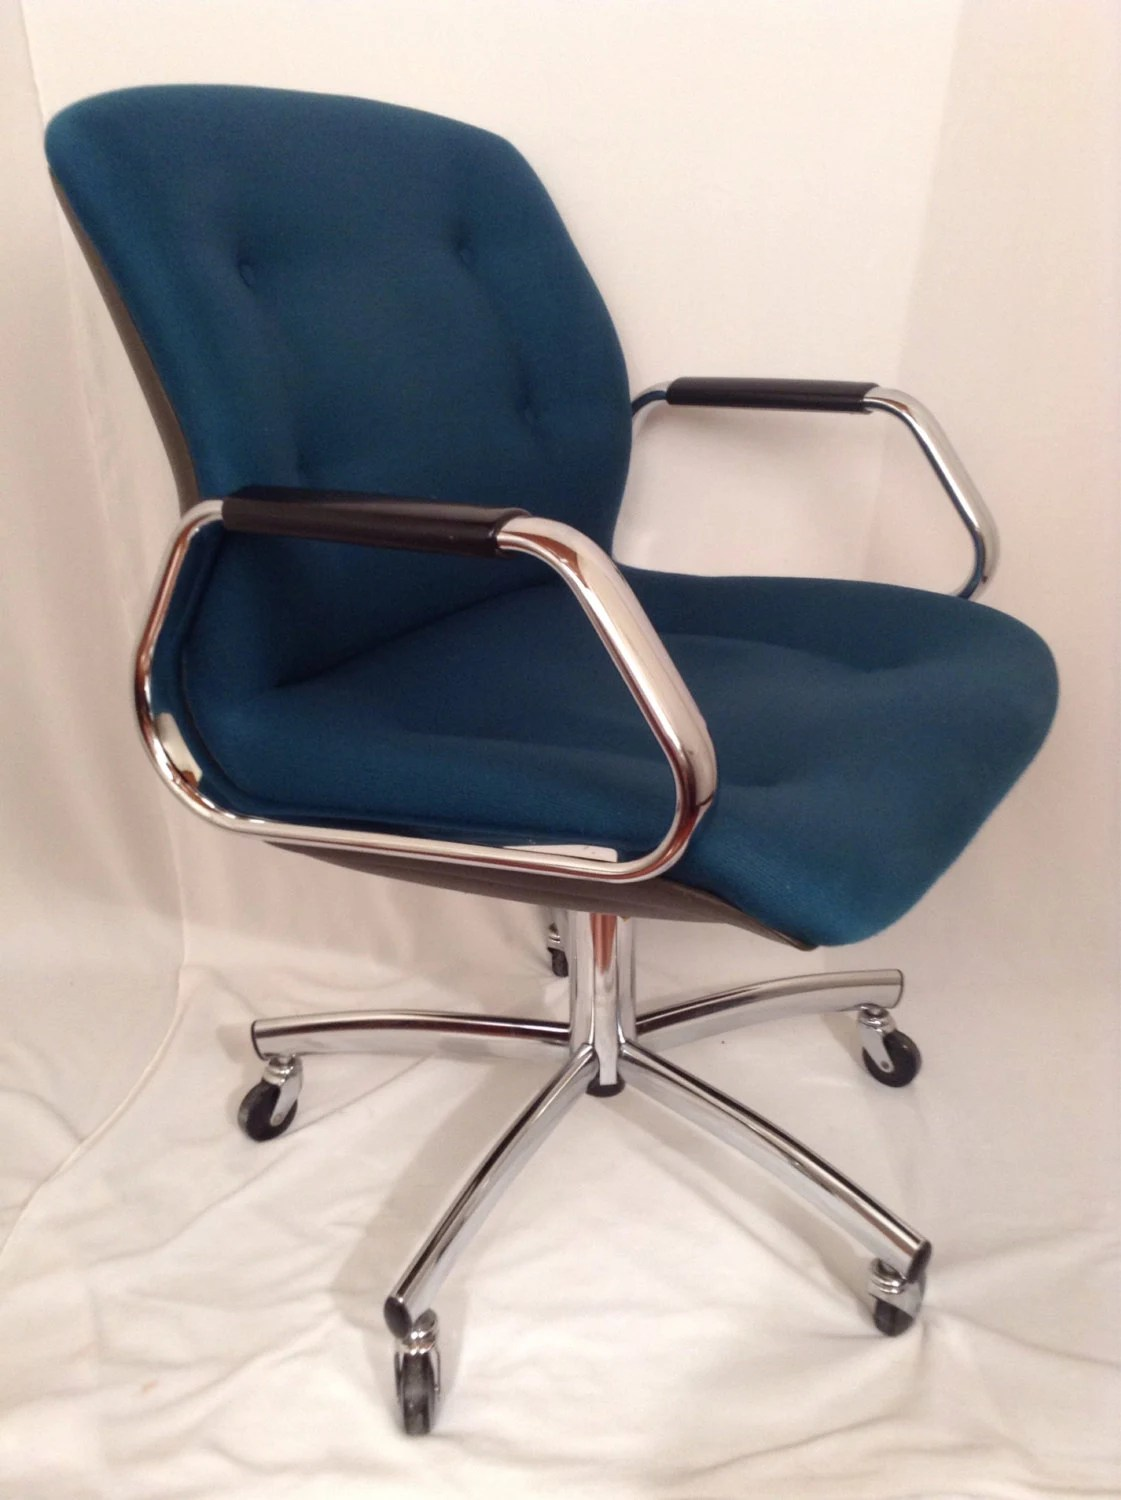 steelcase vintage chair koken barber age reserved sarah model 454 desk green